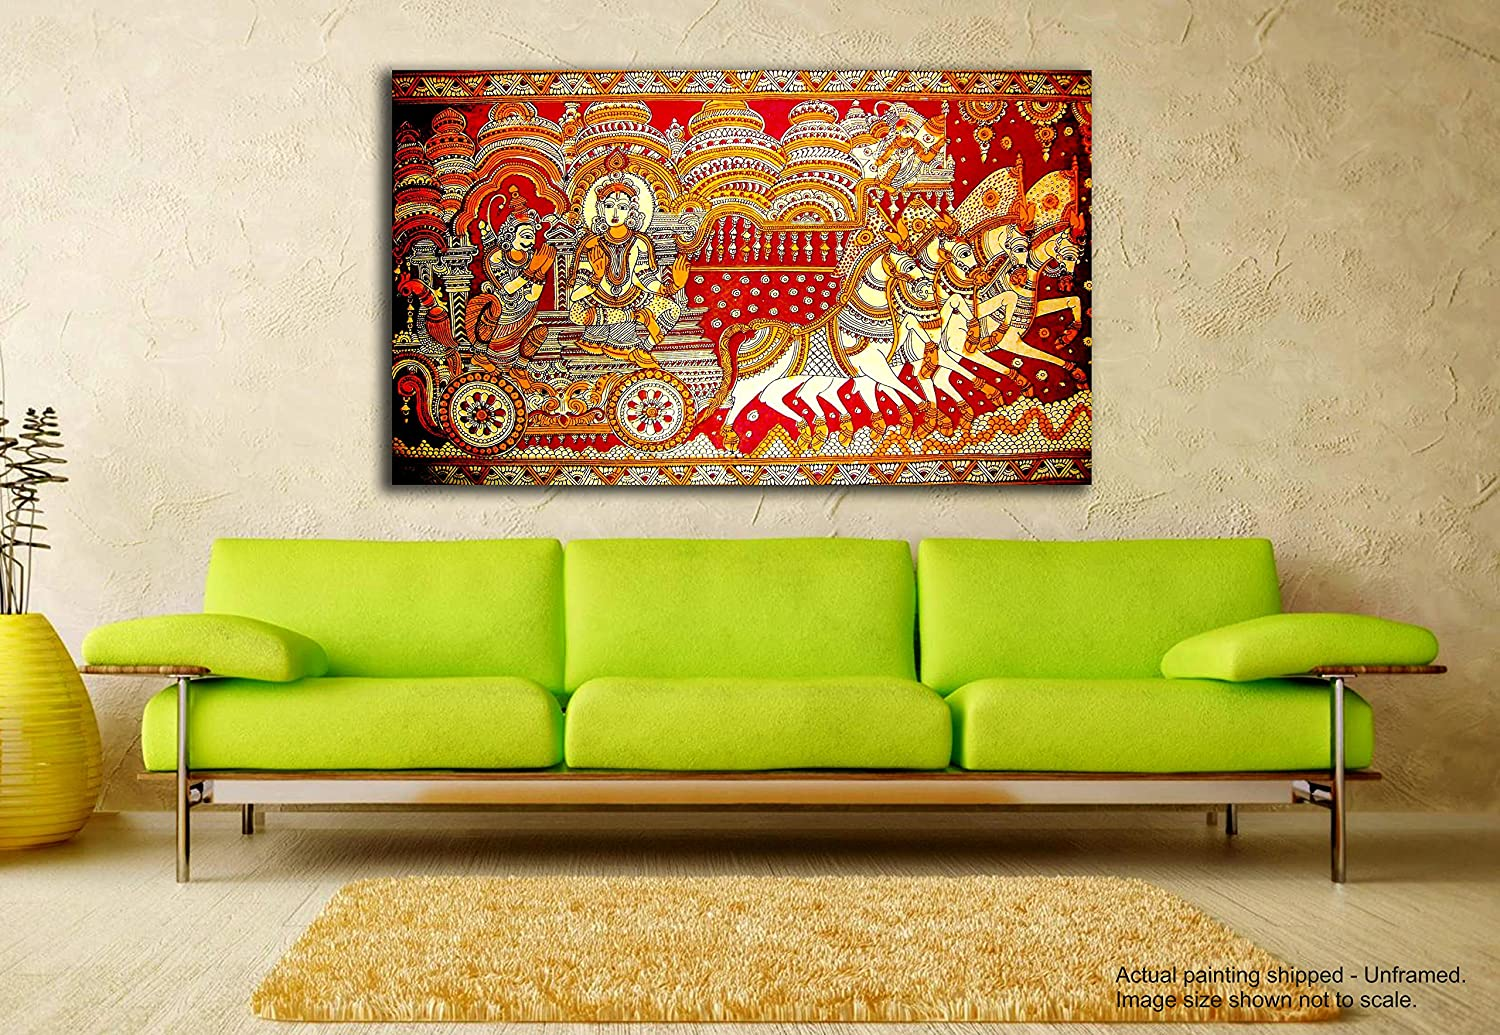 Madhubani art Paintings for living room – mydealforme